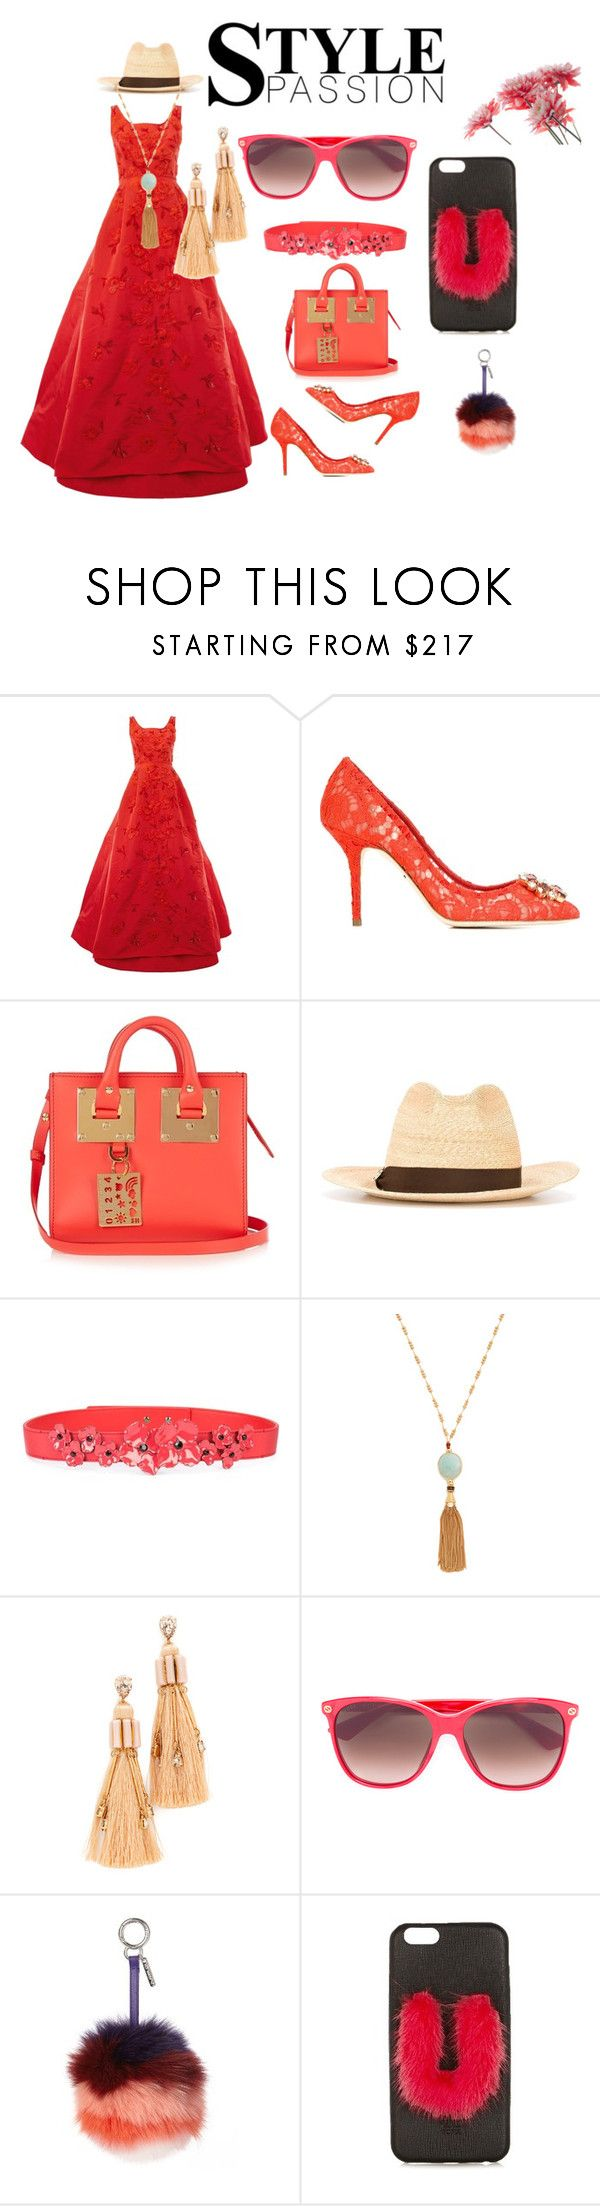 """Red suits for everyone..."" by jamuna-kaalla ❤ liked on Polyvore featuring Oscar de la Renta, Dolce&Gabbana, Sophie Hulme, Dsquared2, Carolina Herrera, Gas Bijoux, Elizabeth Cole, Gucci, Fendi and vintage"